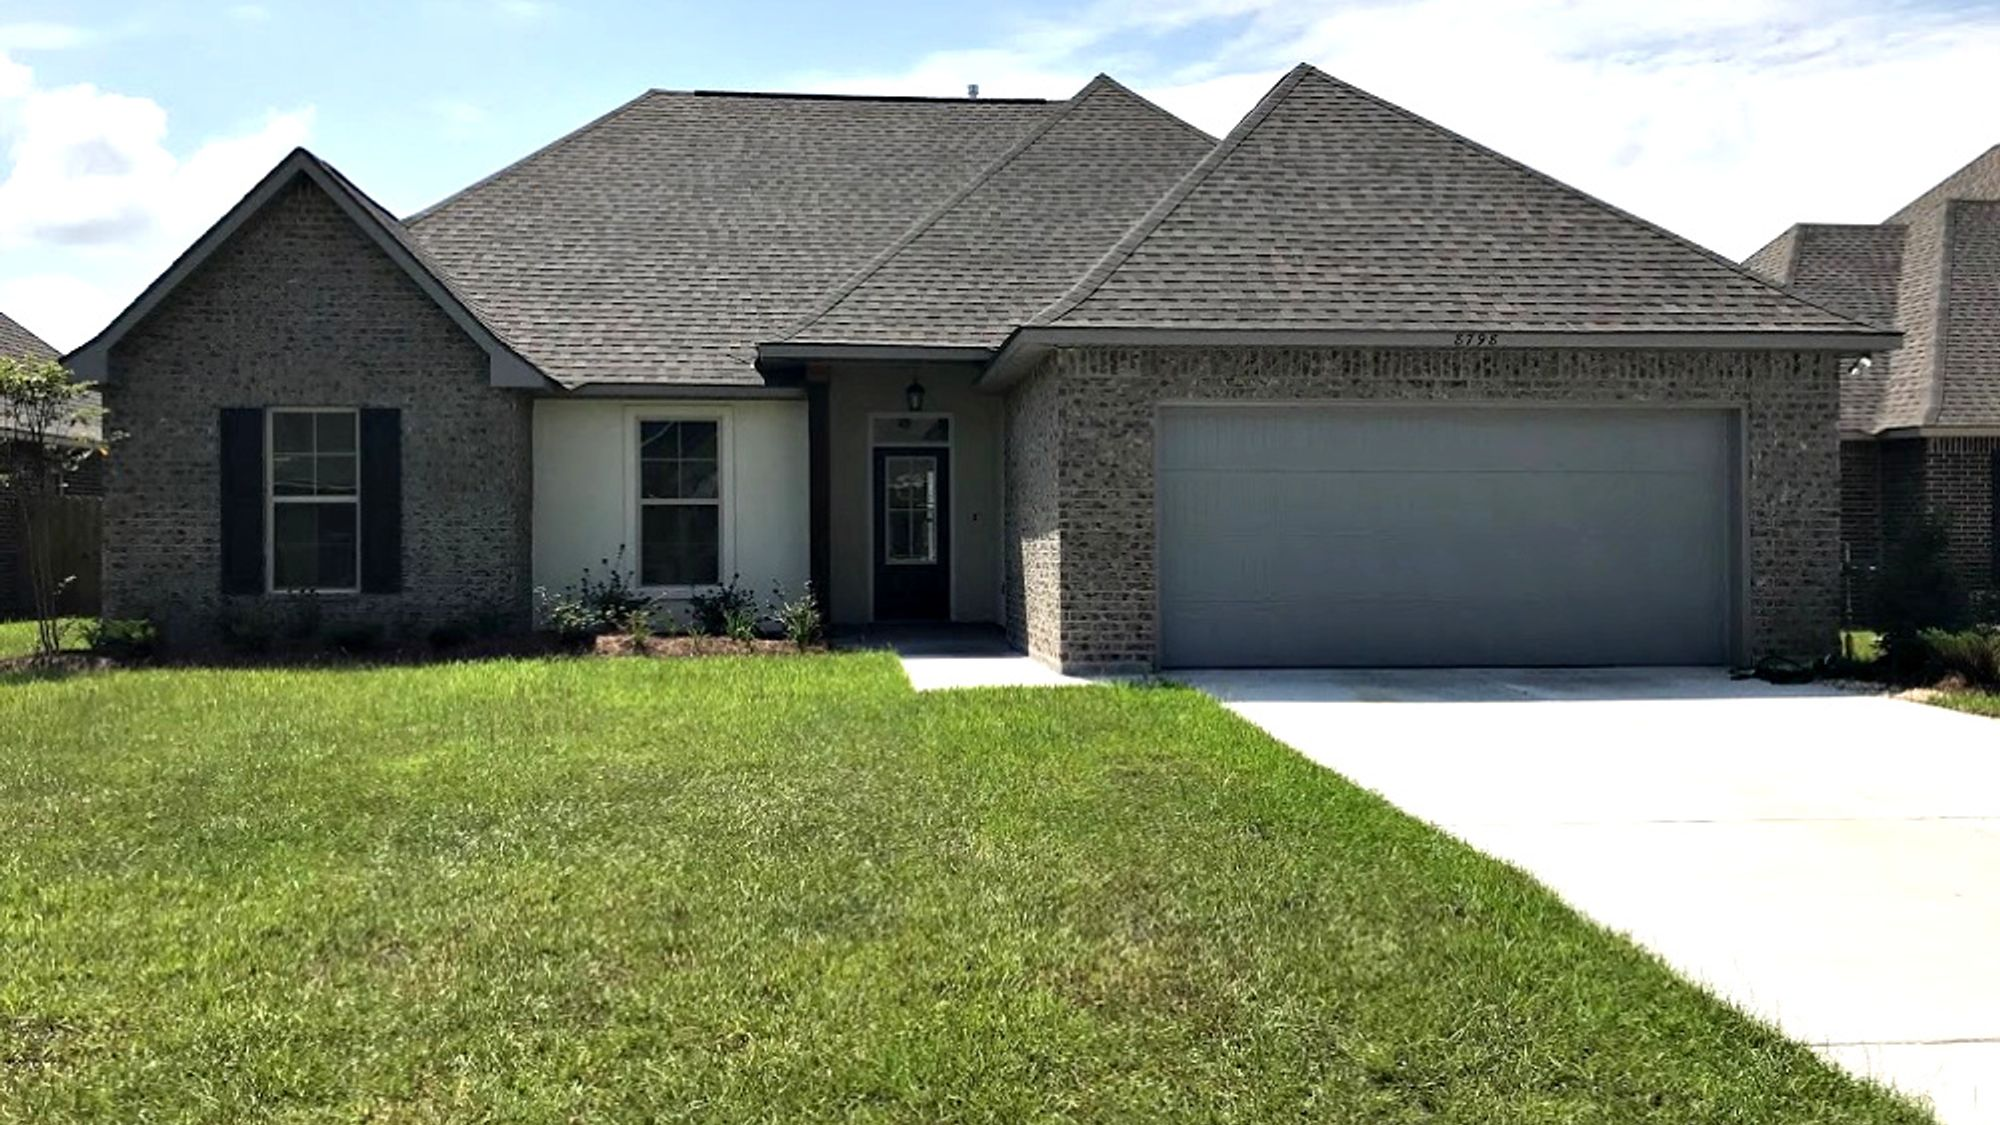 Front View - Nickens Lake Community - DSLD Homes Denham Springs